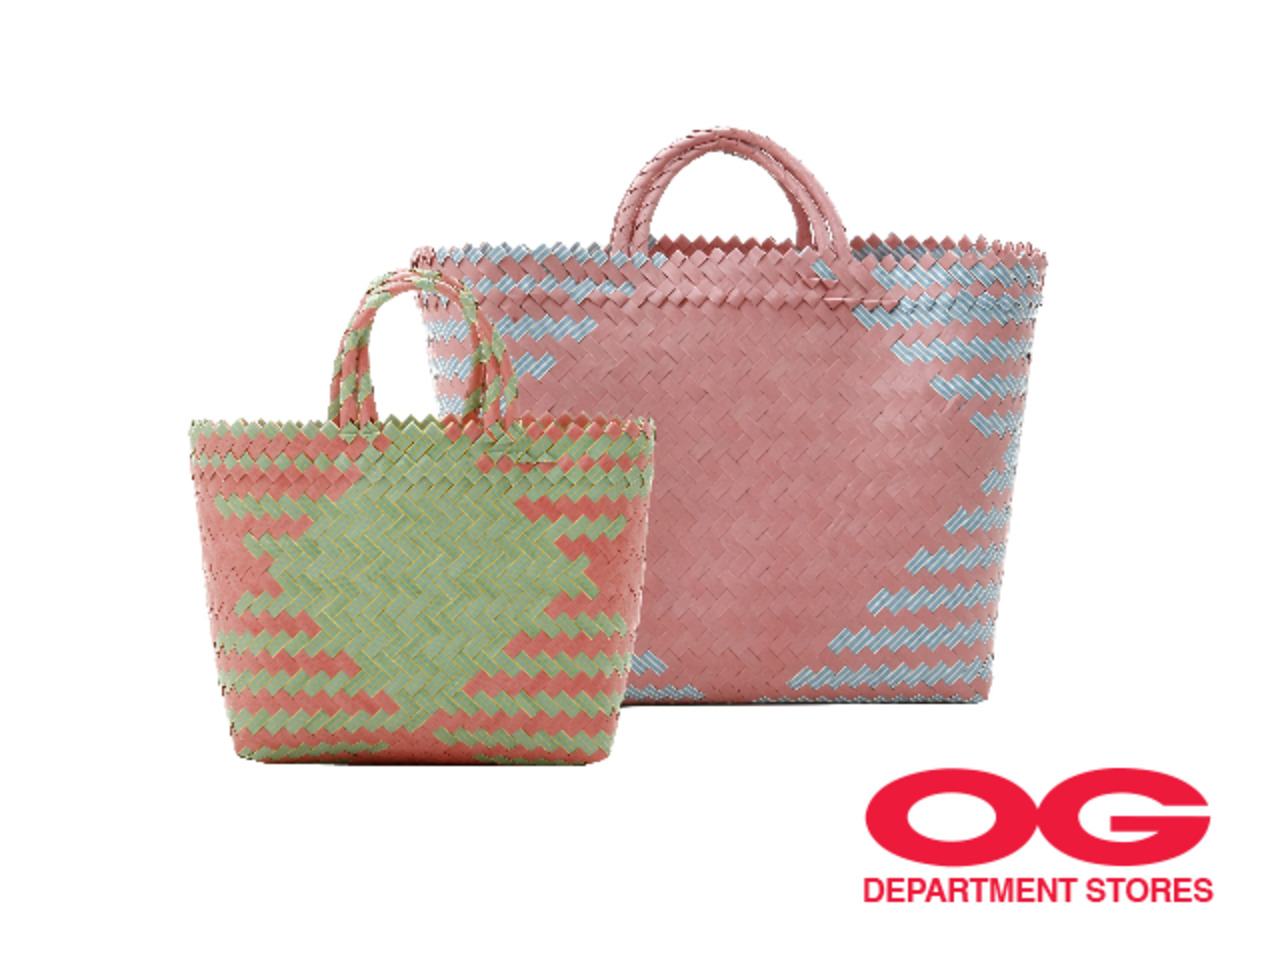 SOEWA Handwoven Recycled Plastic Reusable Bag (Selected Designs) @ 2 for $58–$68